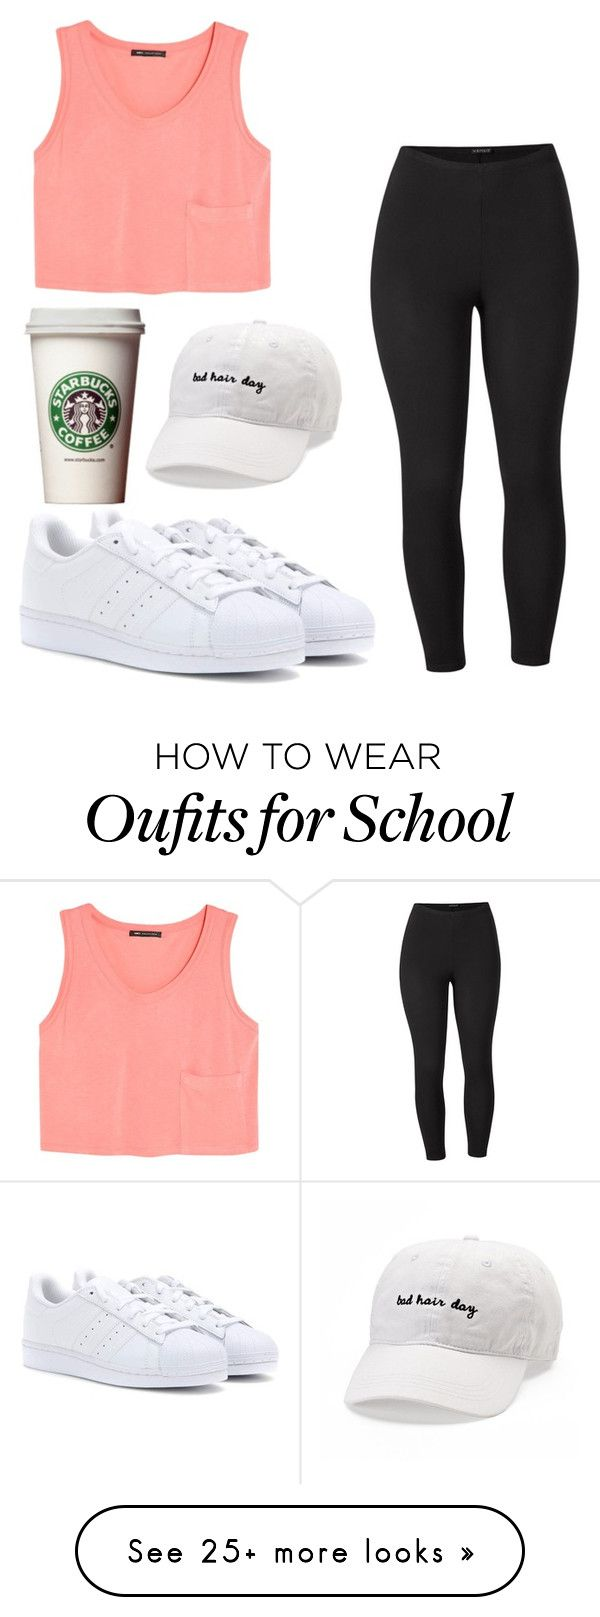 """Untitled #249"" by summerfall24 on Polyvore featuring MANGO, Venus, adidas, SO and plus size clothing"